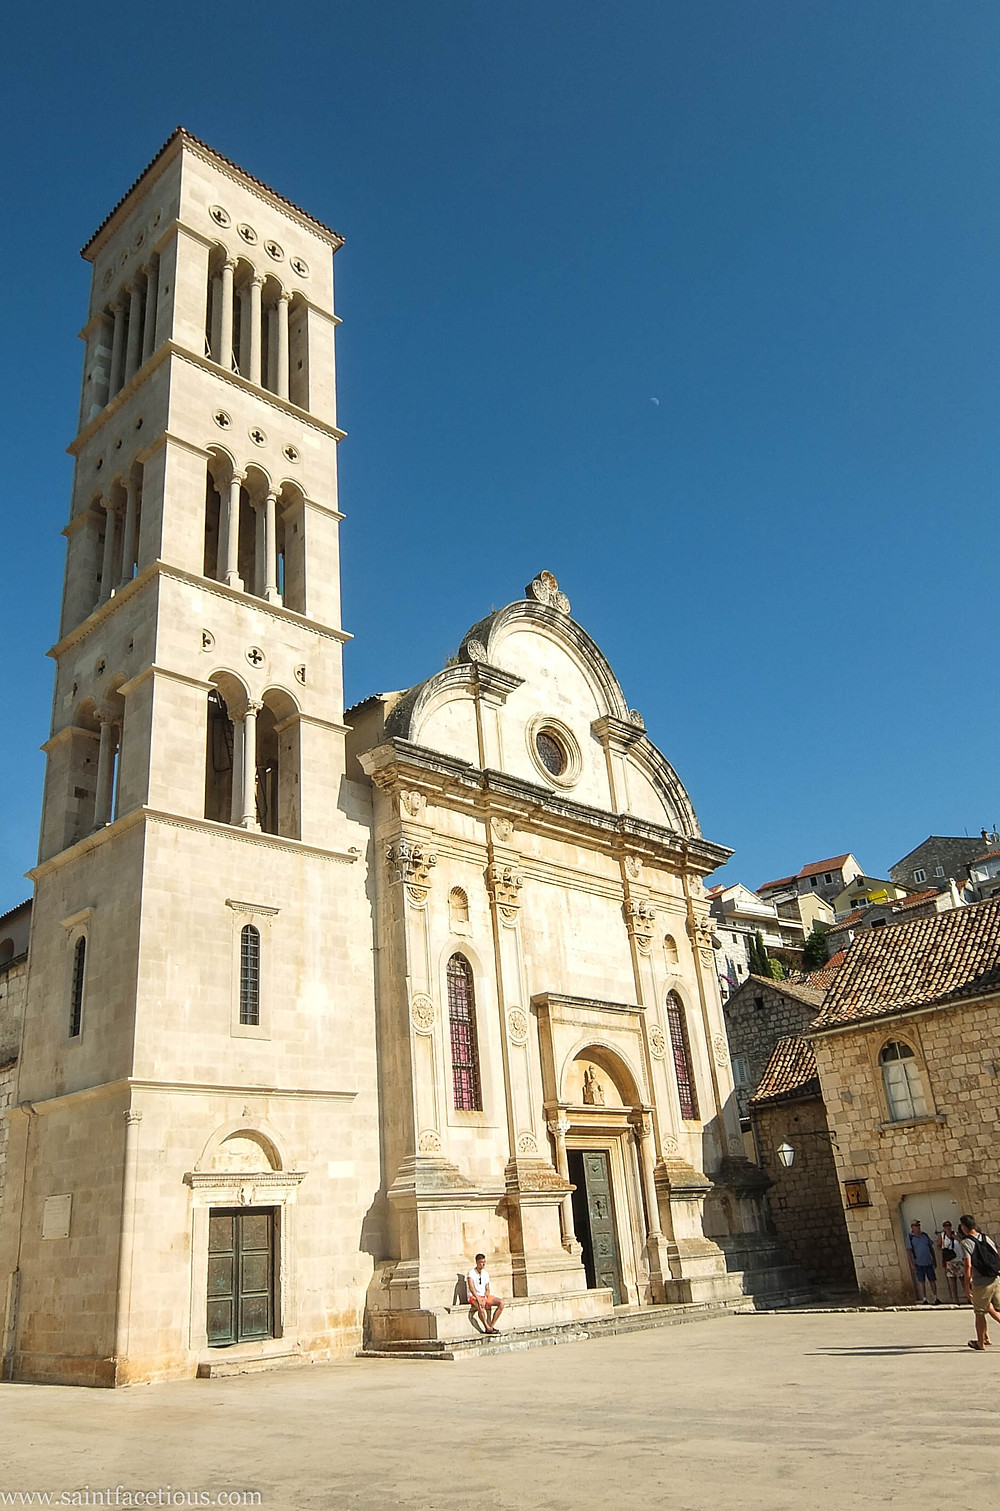 St. Stephen's. The Dalmatian coast is the most beautiful in the world. Hvar is the place to go for the partying and with a majestic castle view. Read the blog for more.